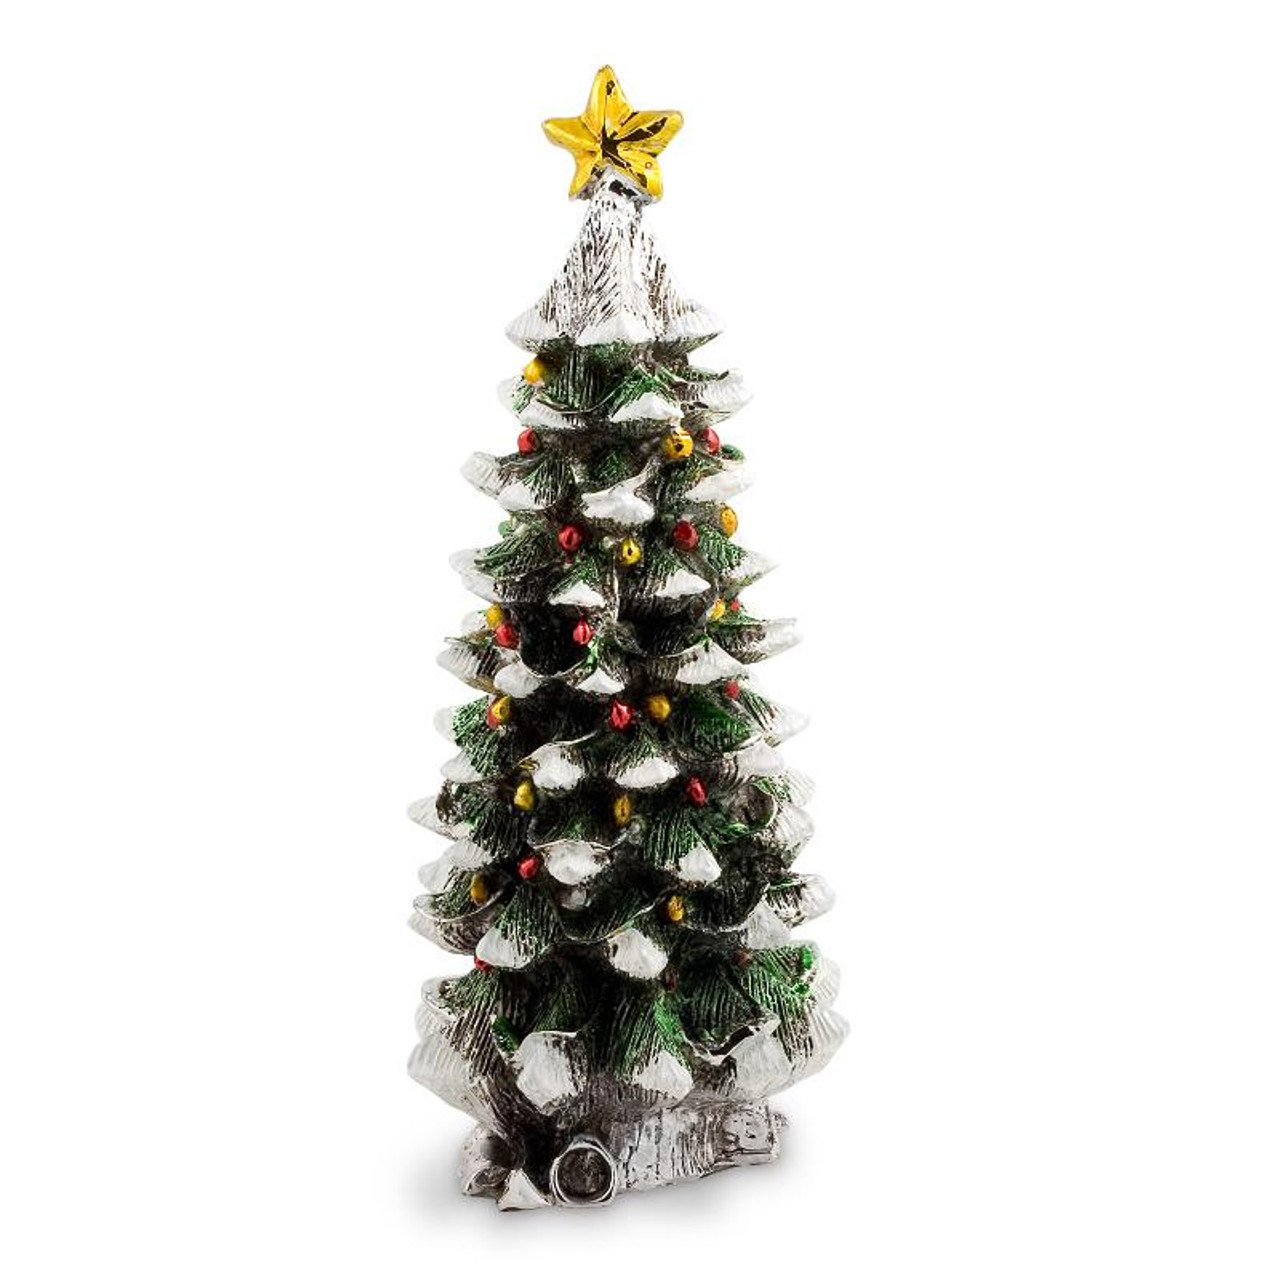 Italian Christmas.Silver Italian Christmas Tree With Star